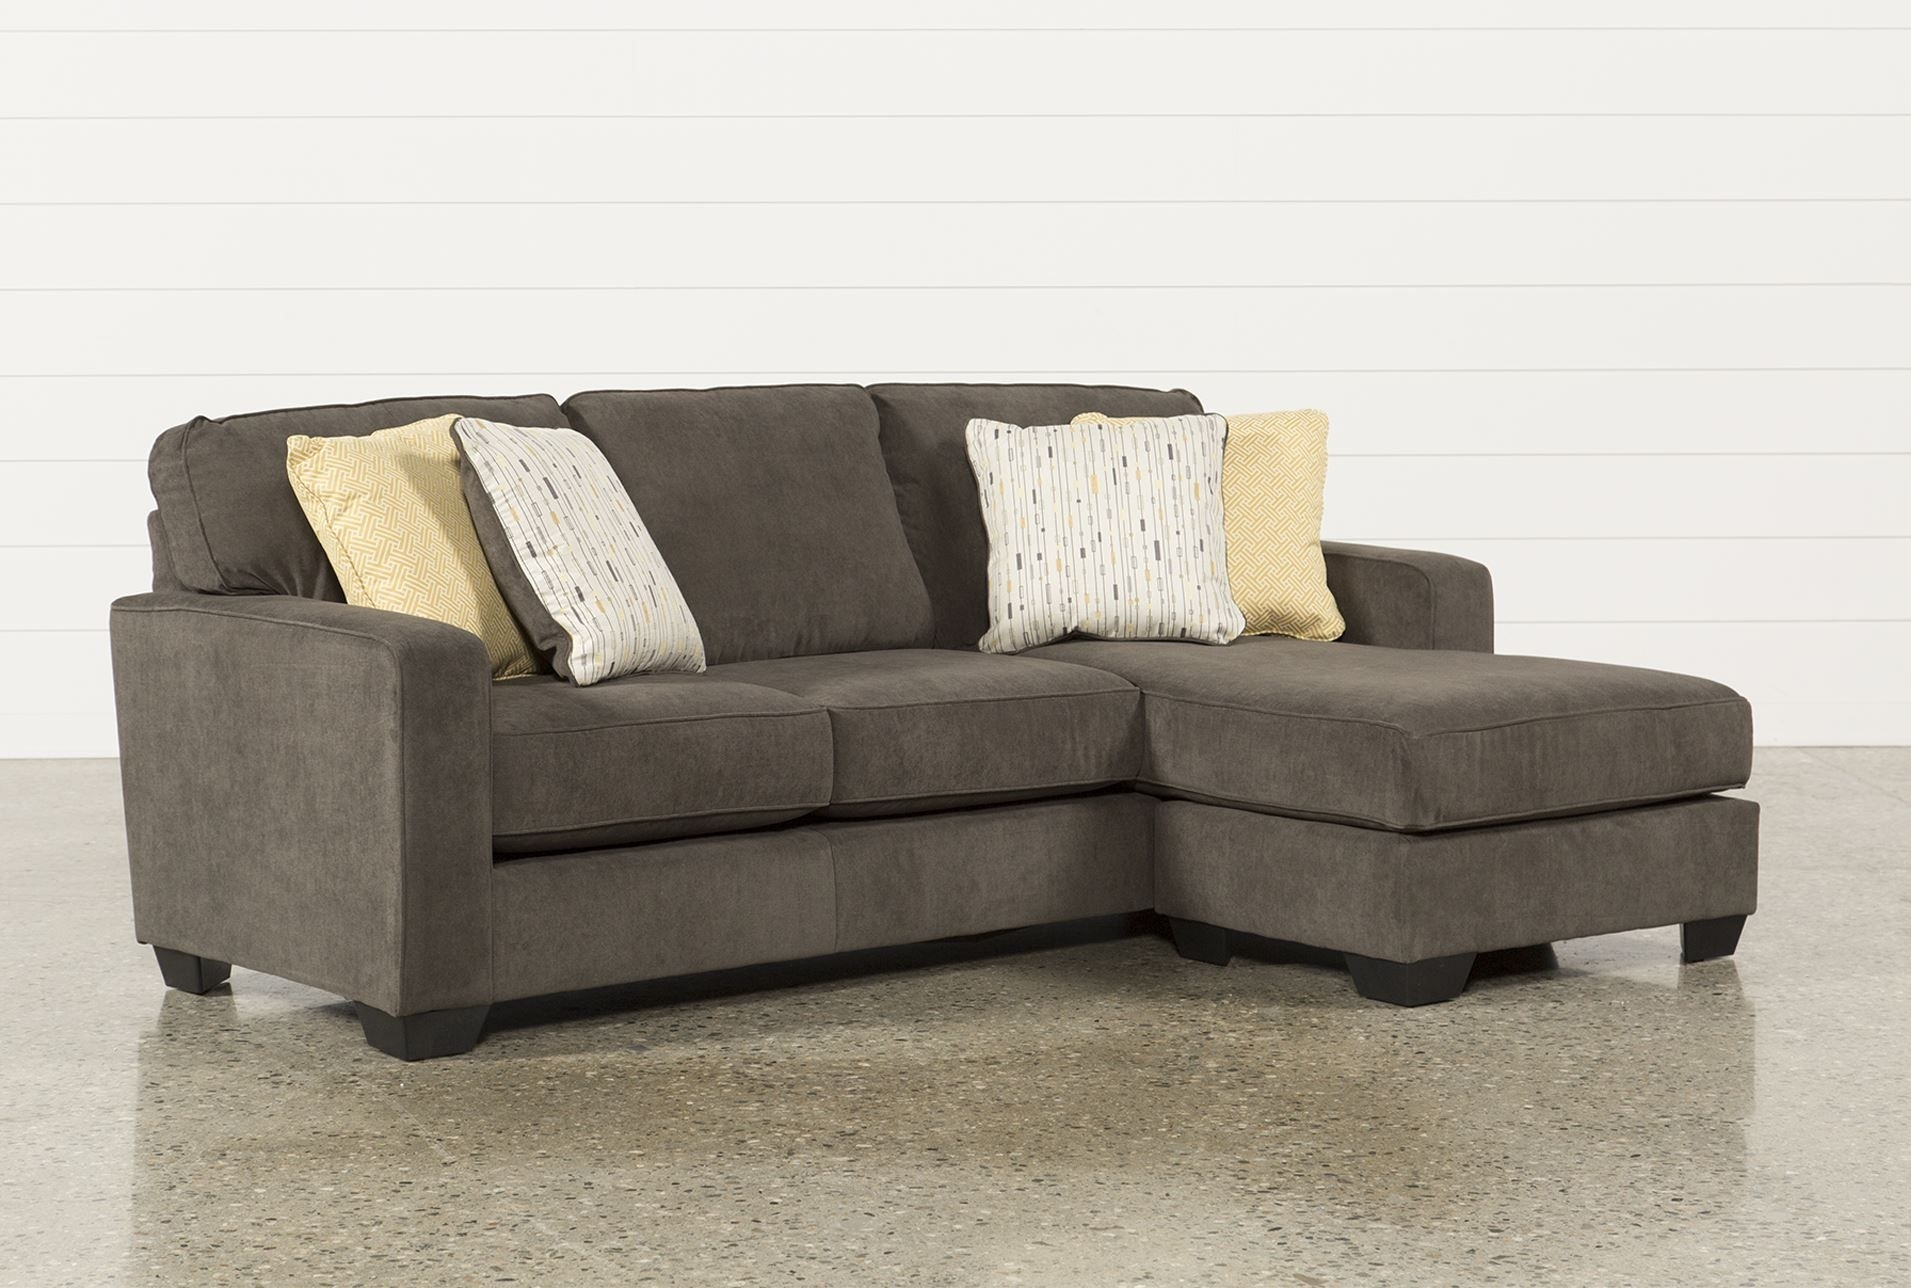 Hodan Sofa/chaise | Home – | Pinterest | Living Spaces, Spaces And Regarding Mcculla Sofa Sectionals With Reversible Chaise (View 11 of 25)